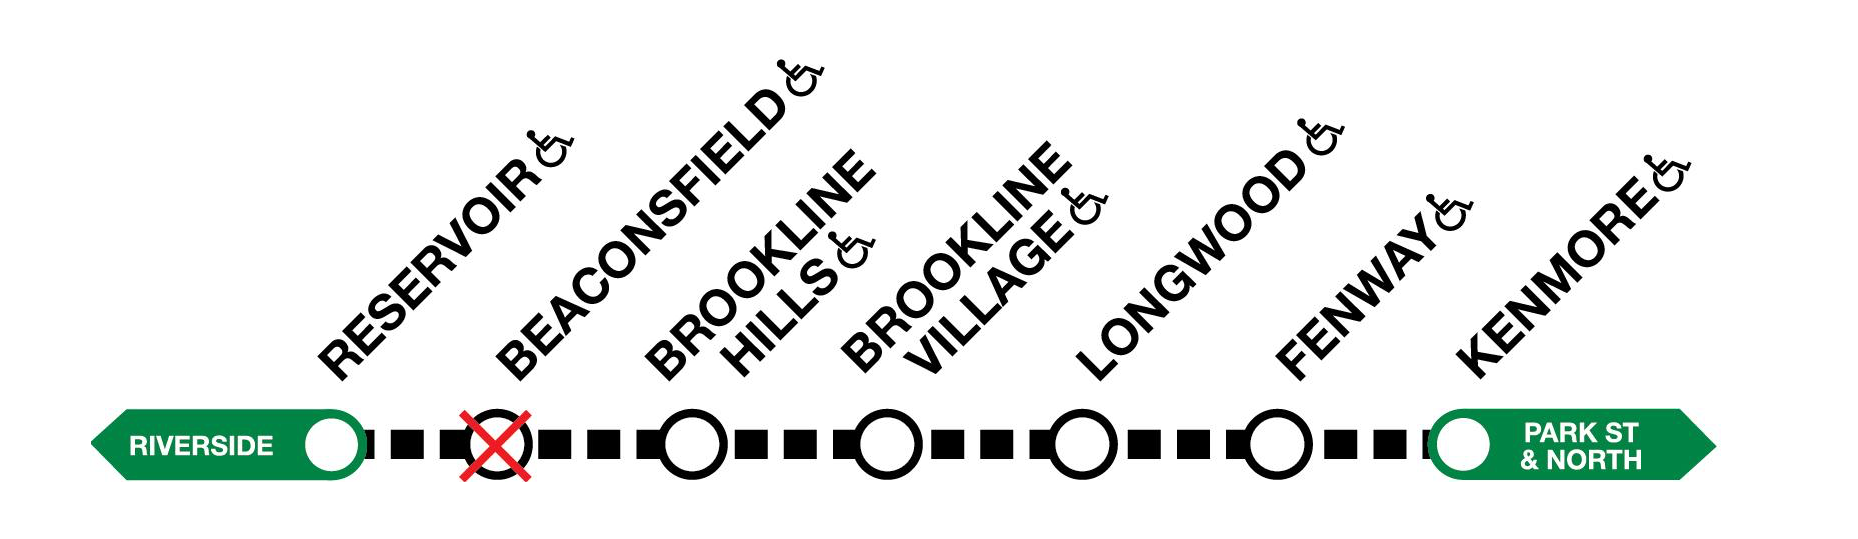 Green Line D line diagram showing shuttle service from Kenmore to Rervoir, with Beaconsfield crossed out to signify not shuttle stops at that station